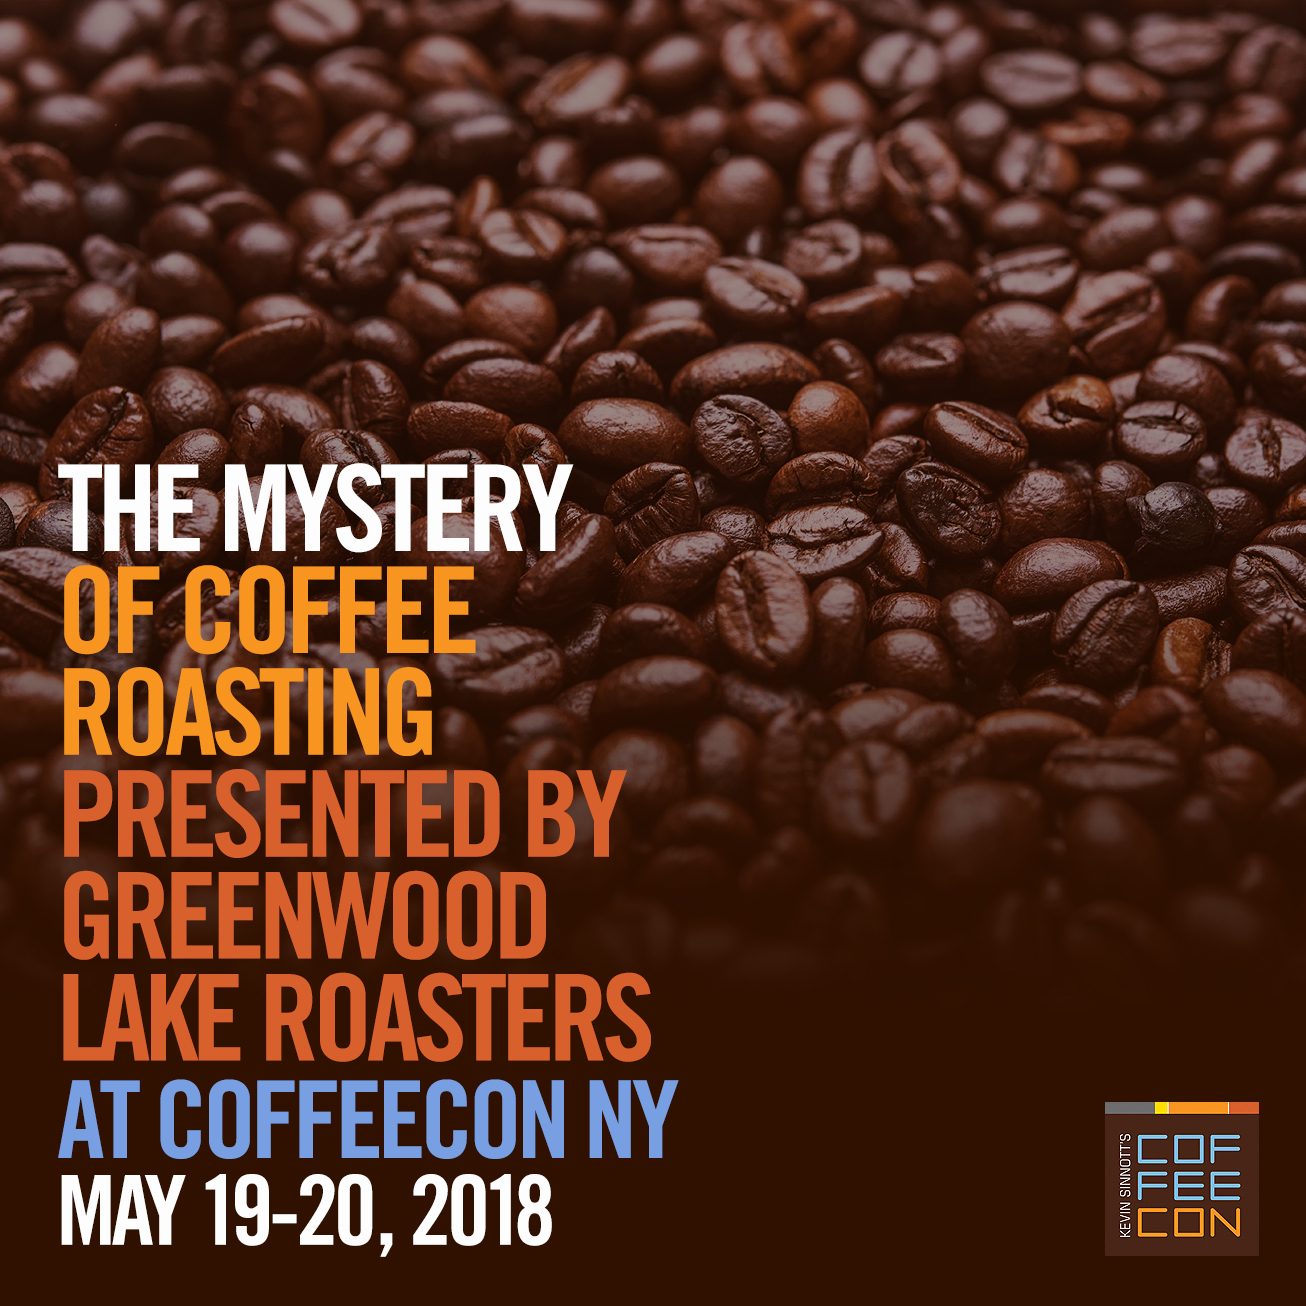 The Mystery of Coffee Roasting